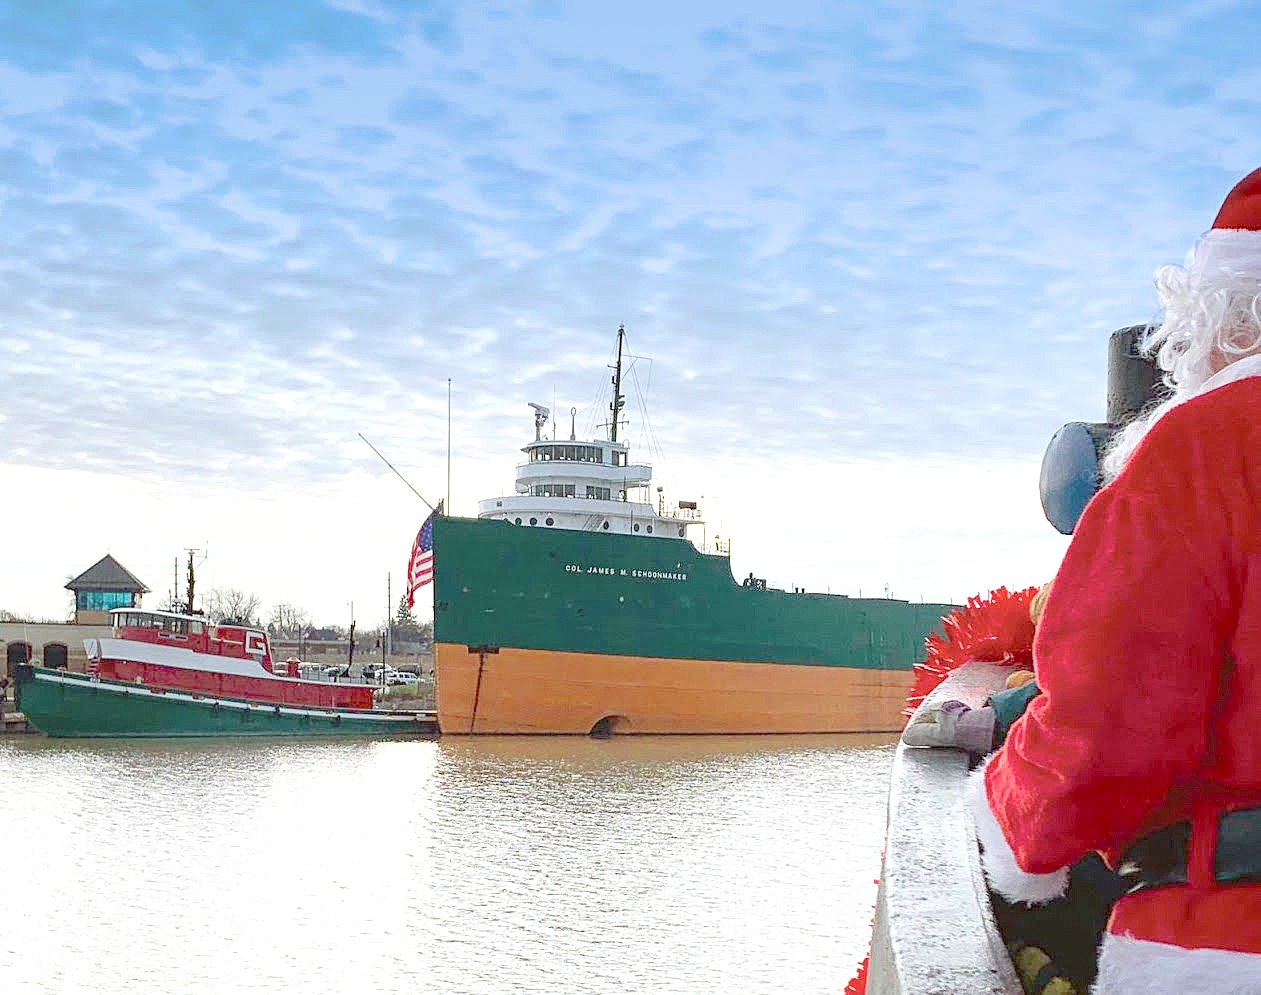 Spectators can watch live or via Facebook Live as Santa and a boatload of Christmas trees arrive at the National Museum of the Great Lakes on Saturday, Dec. 5. Those who wish to can donate a tree or contribute toward a gift card for families in need. (Submitted photo)